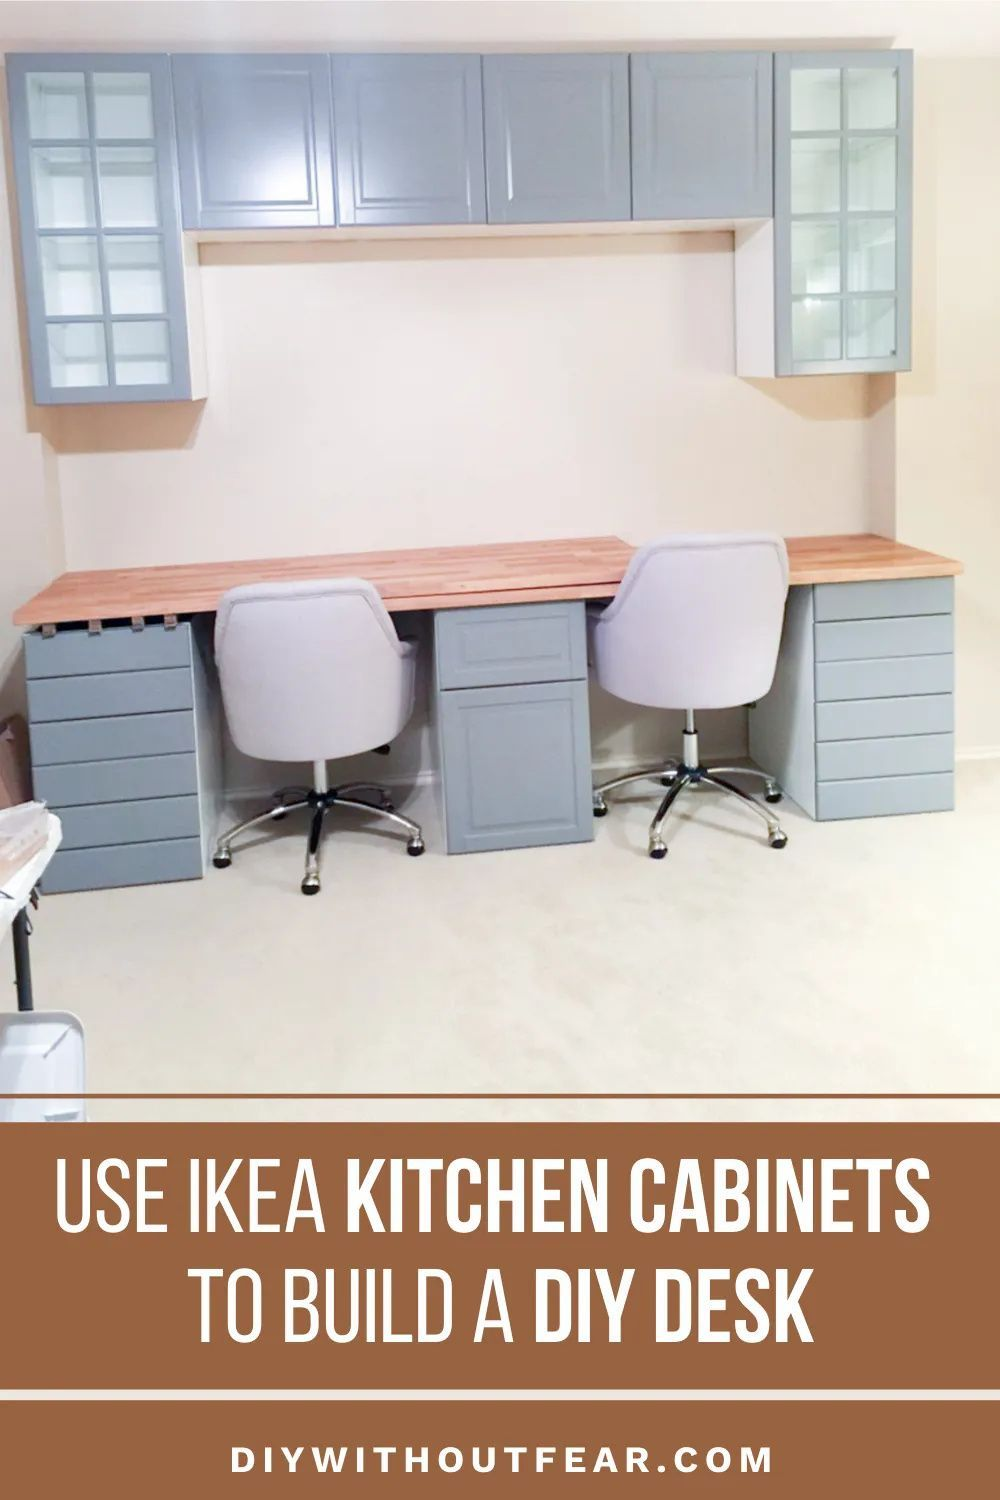 How To Make A Desk From Kitchen Cabinets Part One Diy Without Fear In 2020 Ikea Kitchen Cabinets Ikea Kitchen Kitchen Cabinets Parts